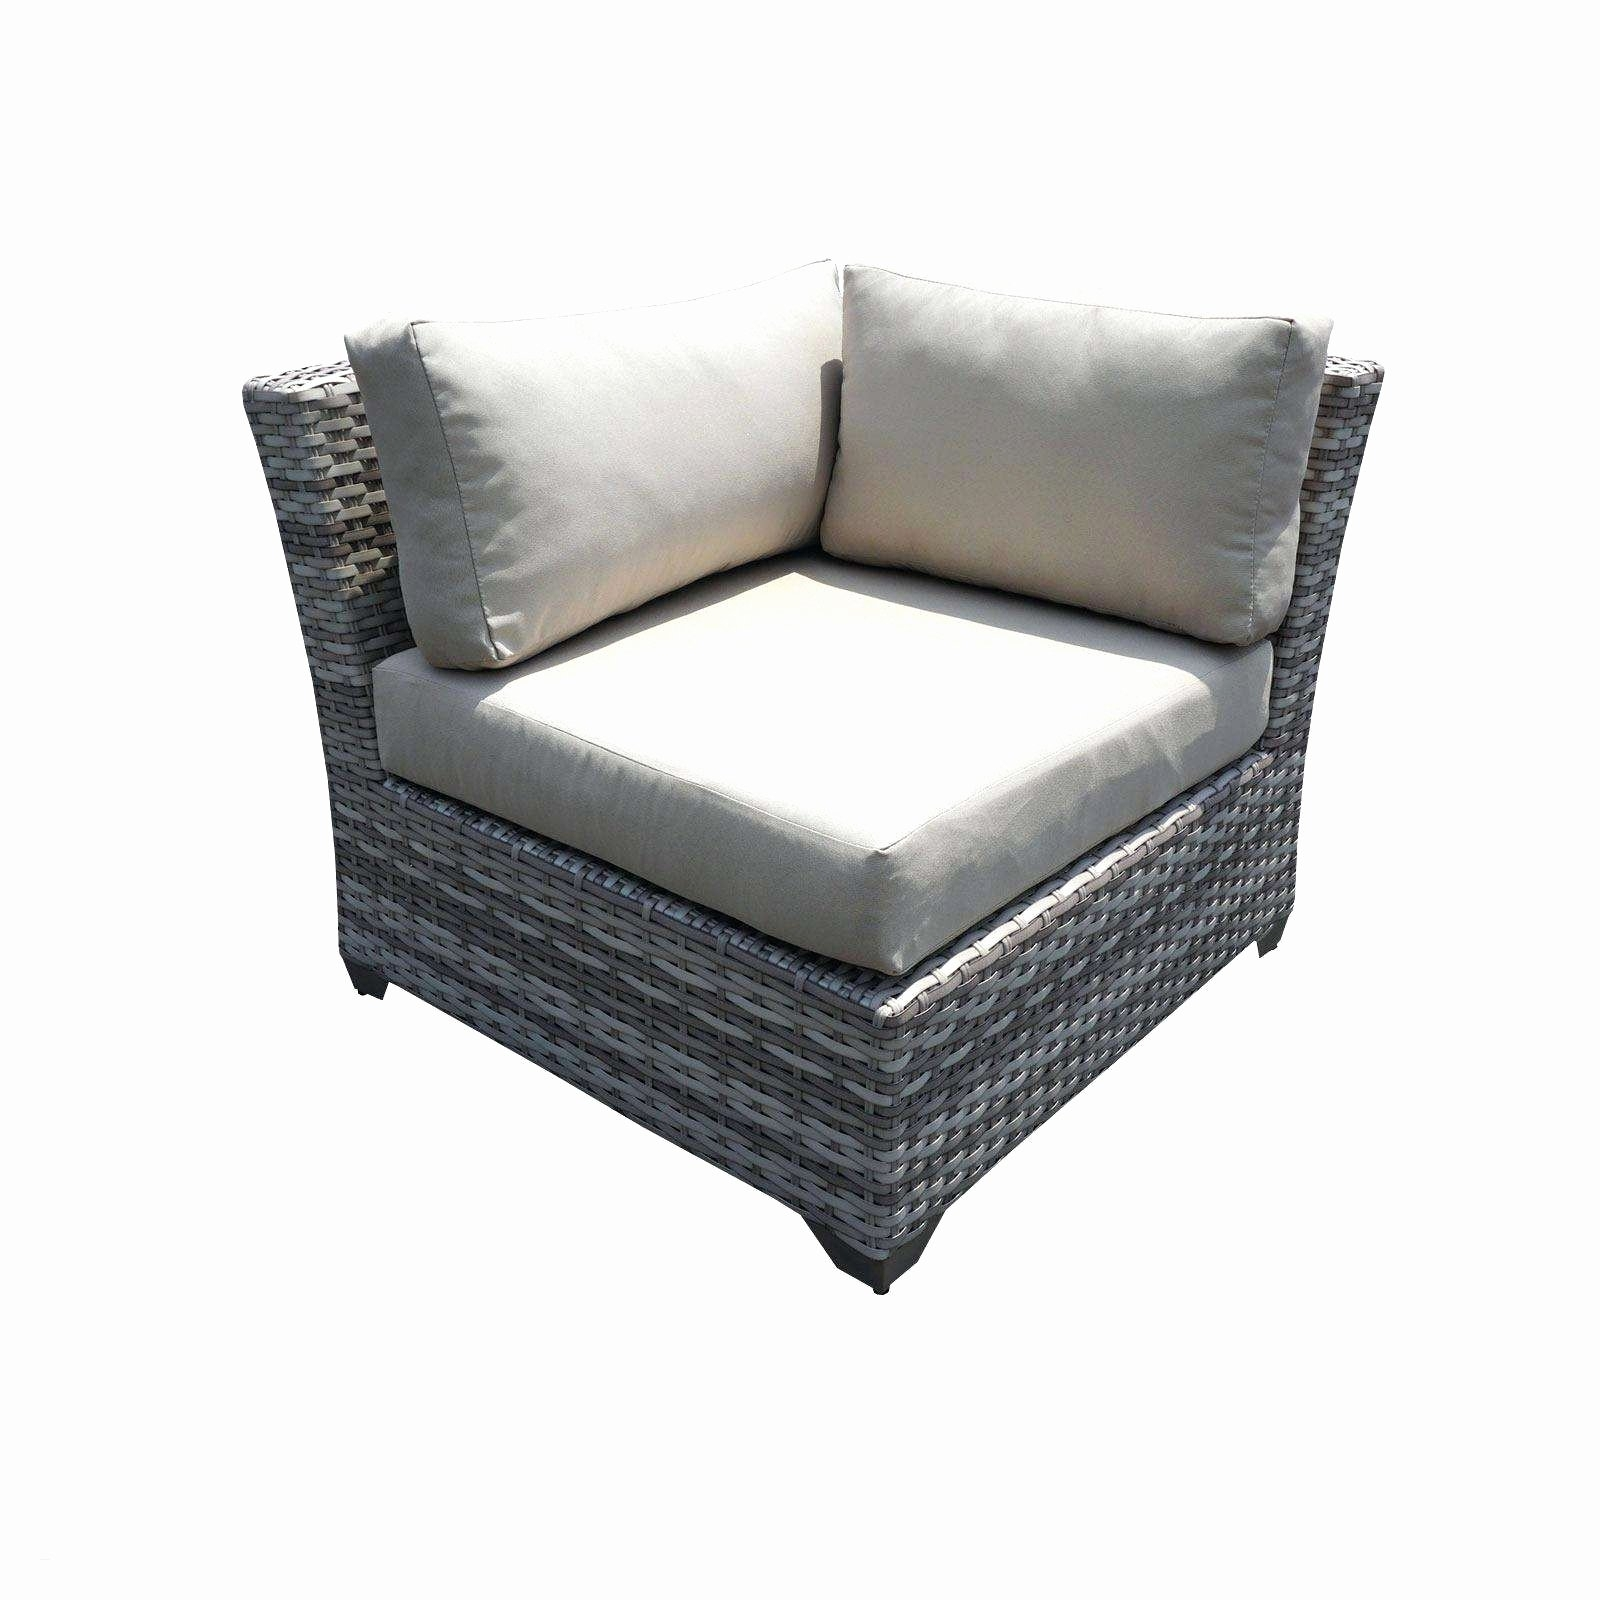 Simple 25 2 Piece Sectionals With Chaise Awesome | Russiandesignshow Intended For Aquarius Light Grey 2 Piece Sectionals With Raf Chaise (Image 24 of 25)